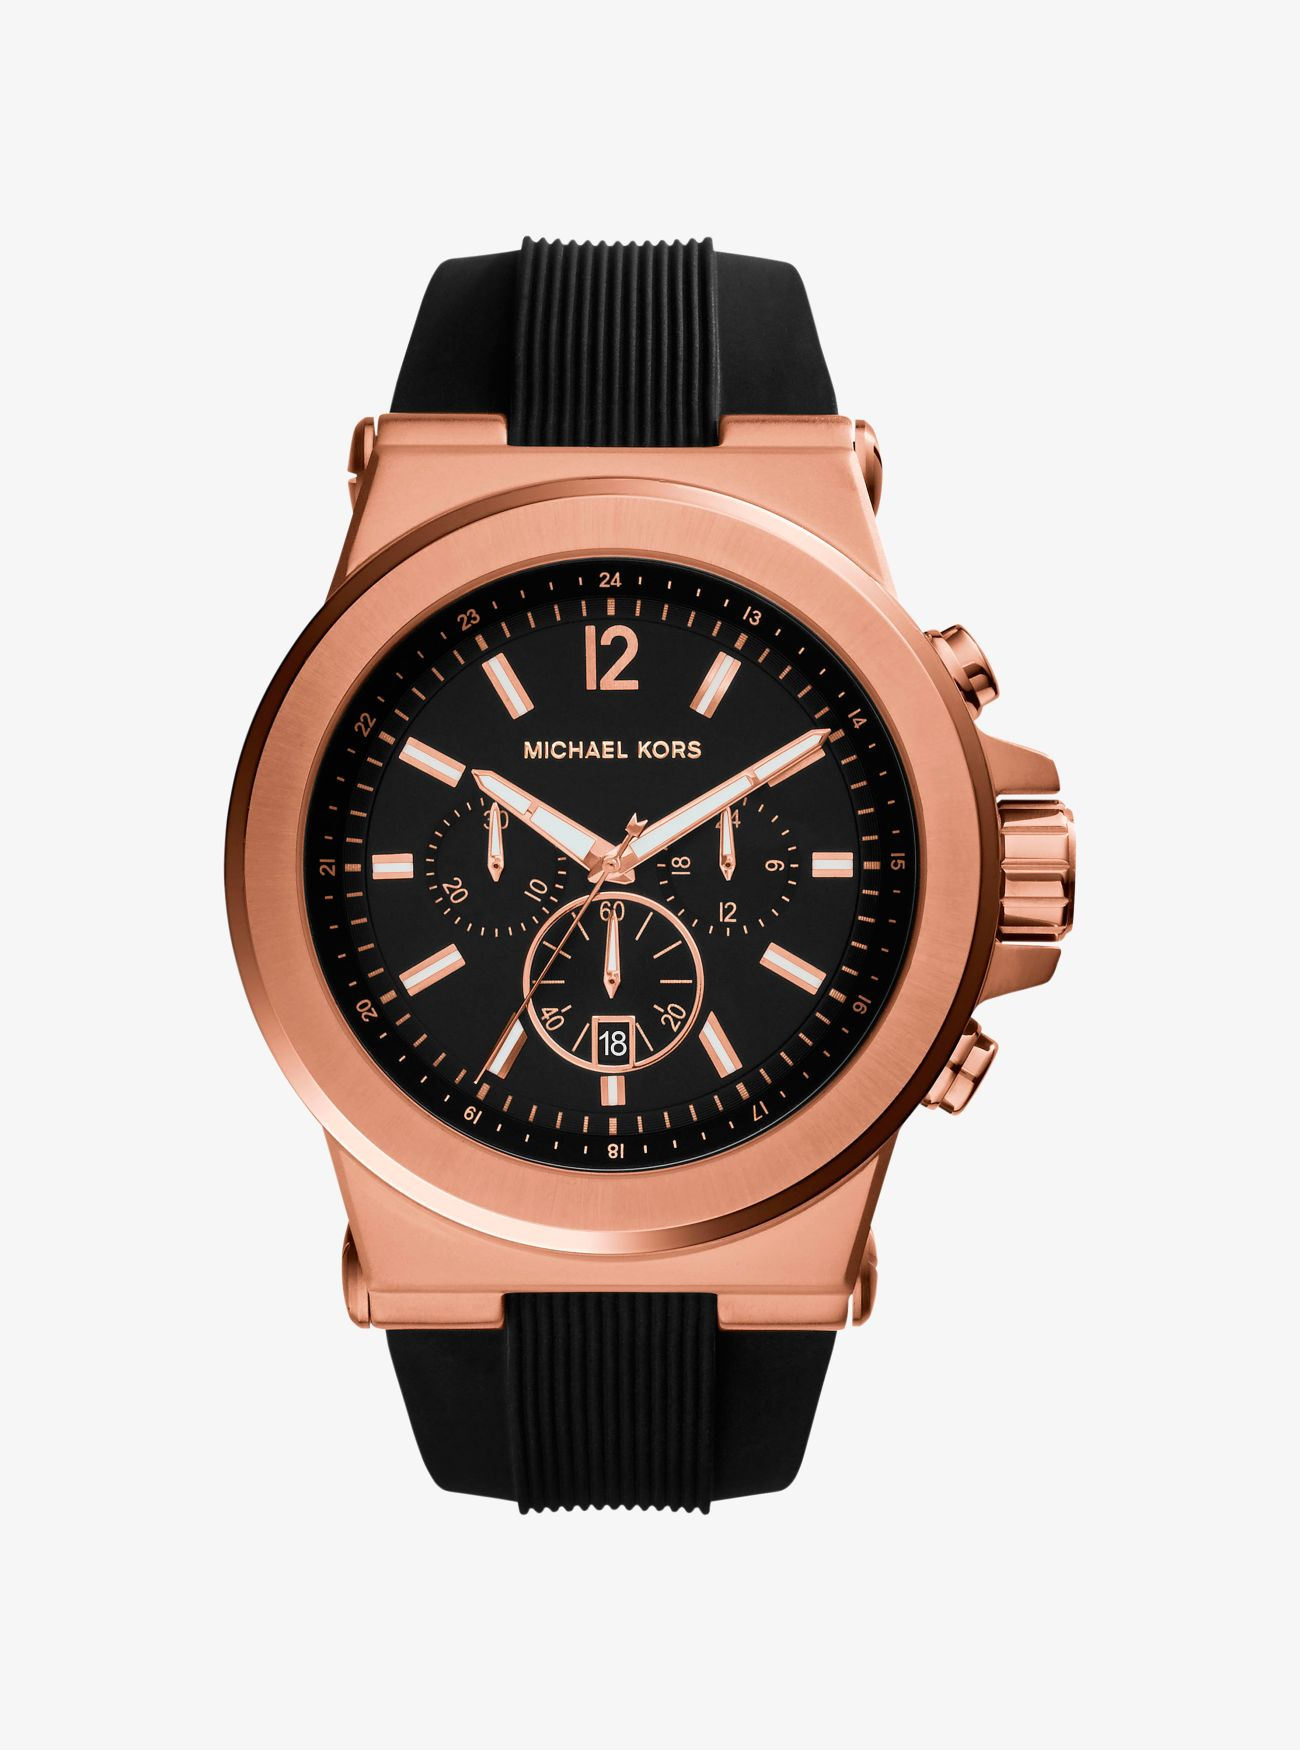 milanese wrist ultimate original larsson you with sophistication gold a watch chain made and the rose in by versatile iconic band jennings have pair swiss watches lugano detailed timeless ch metal this